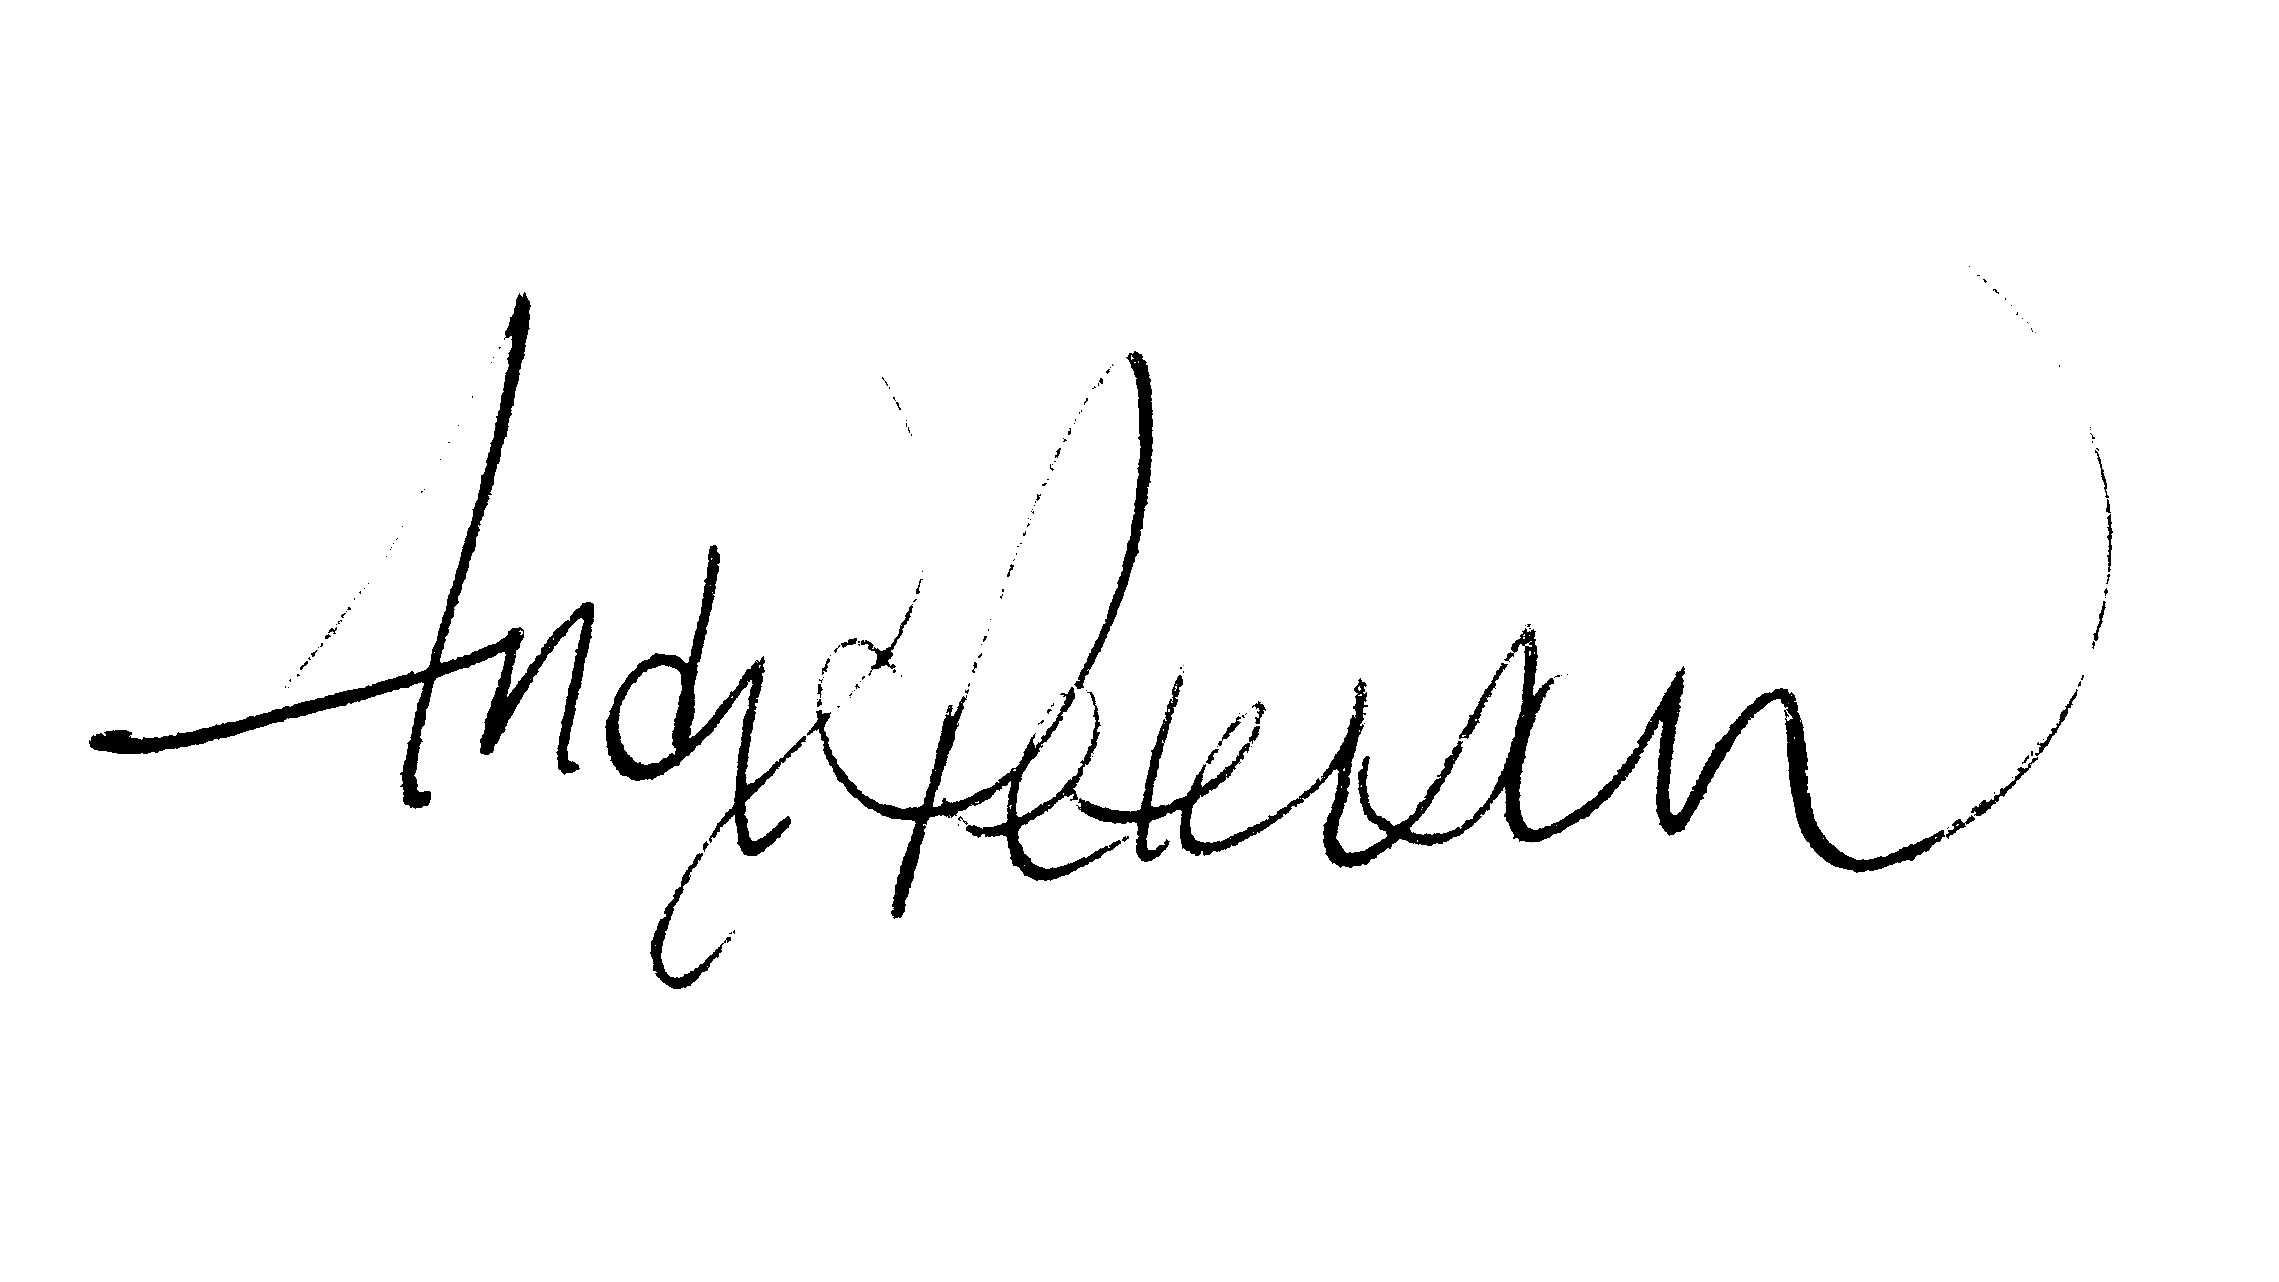 Andy Peterson's Signature